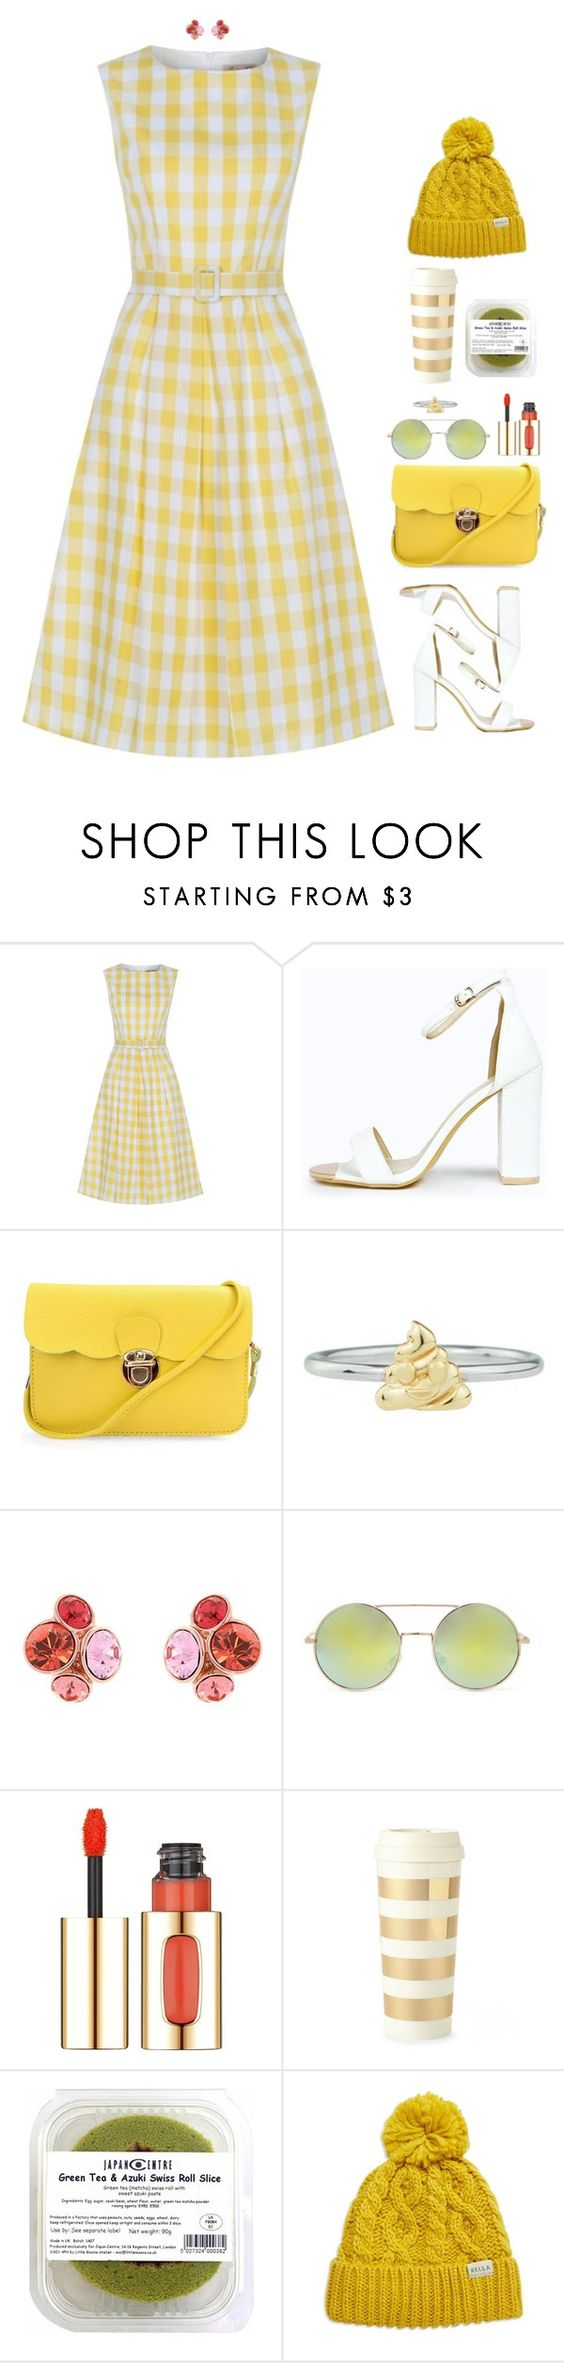 """Ray of sunshine"" by xoxomuty on Polyvore featuring Boohoo, Rock 'N Rose, Ted Baker, Forever 21, L'Oréal Paris, Kate Spade and Rella"